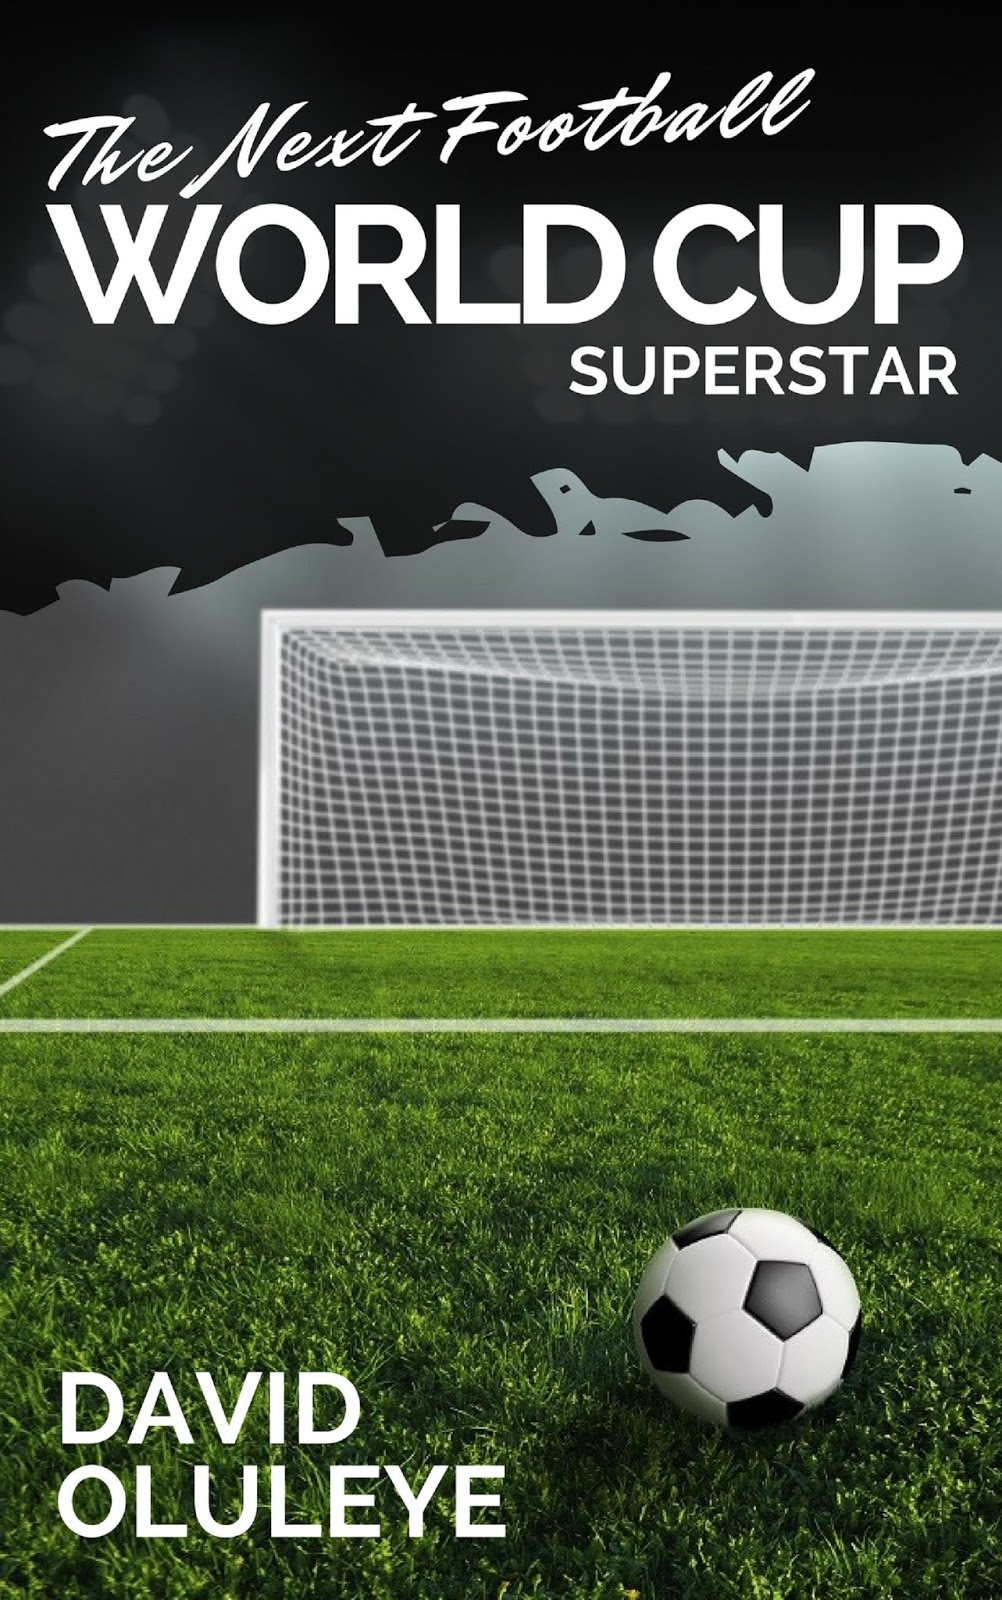 The Next Football World Cup Superstar by David Oluleye